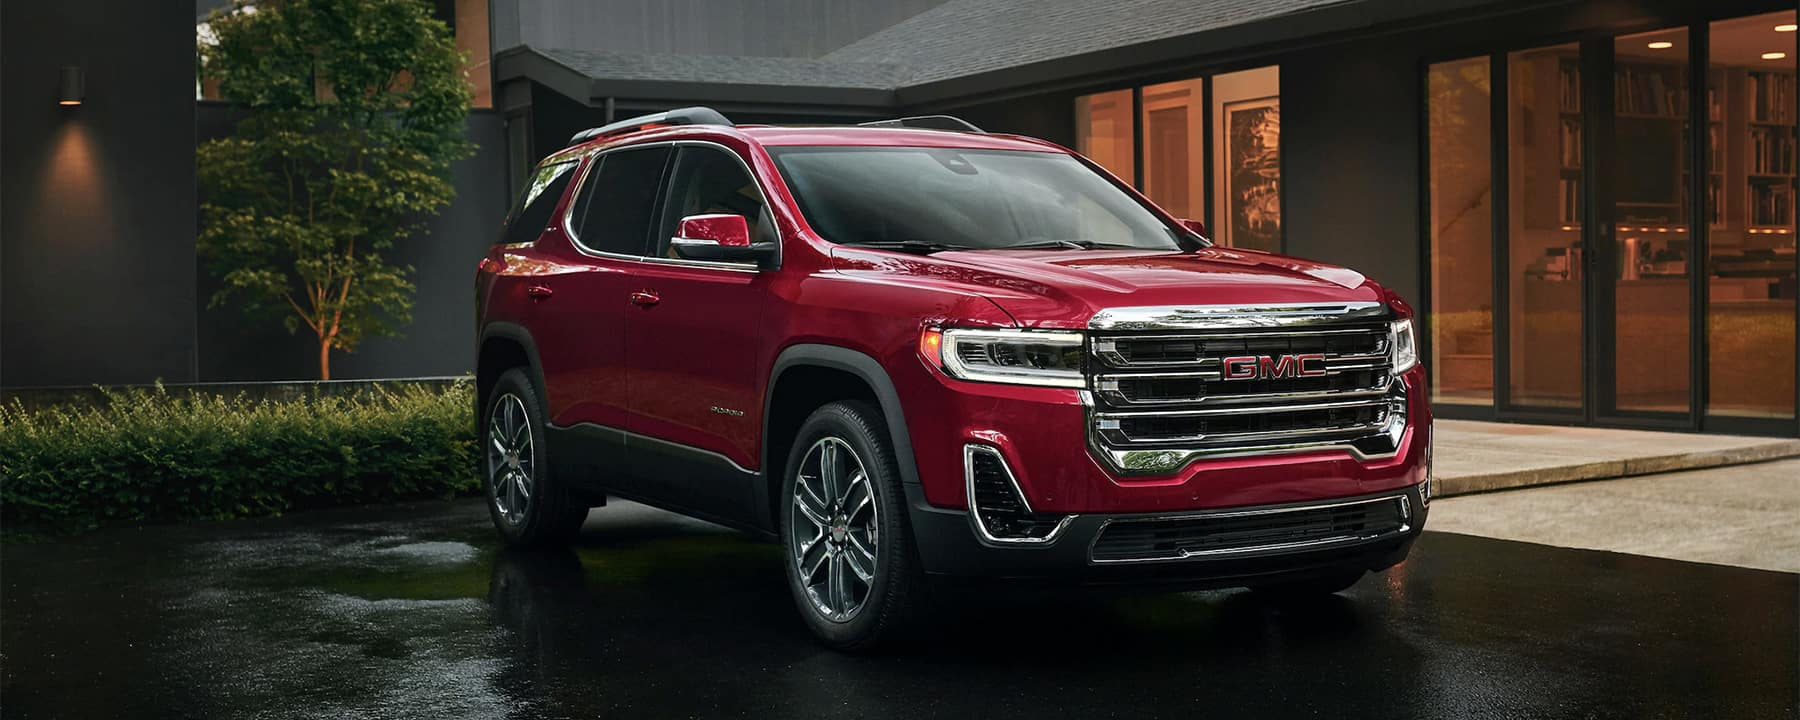 2020 Gmc Acadia Towing Capacity Dave Arbogast